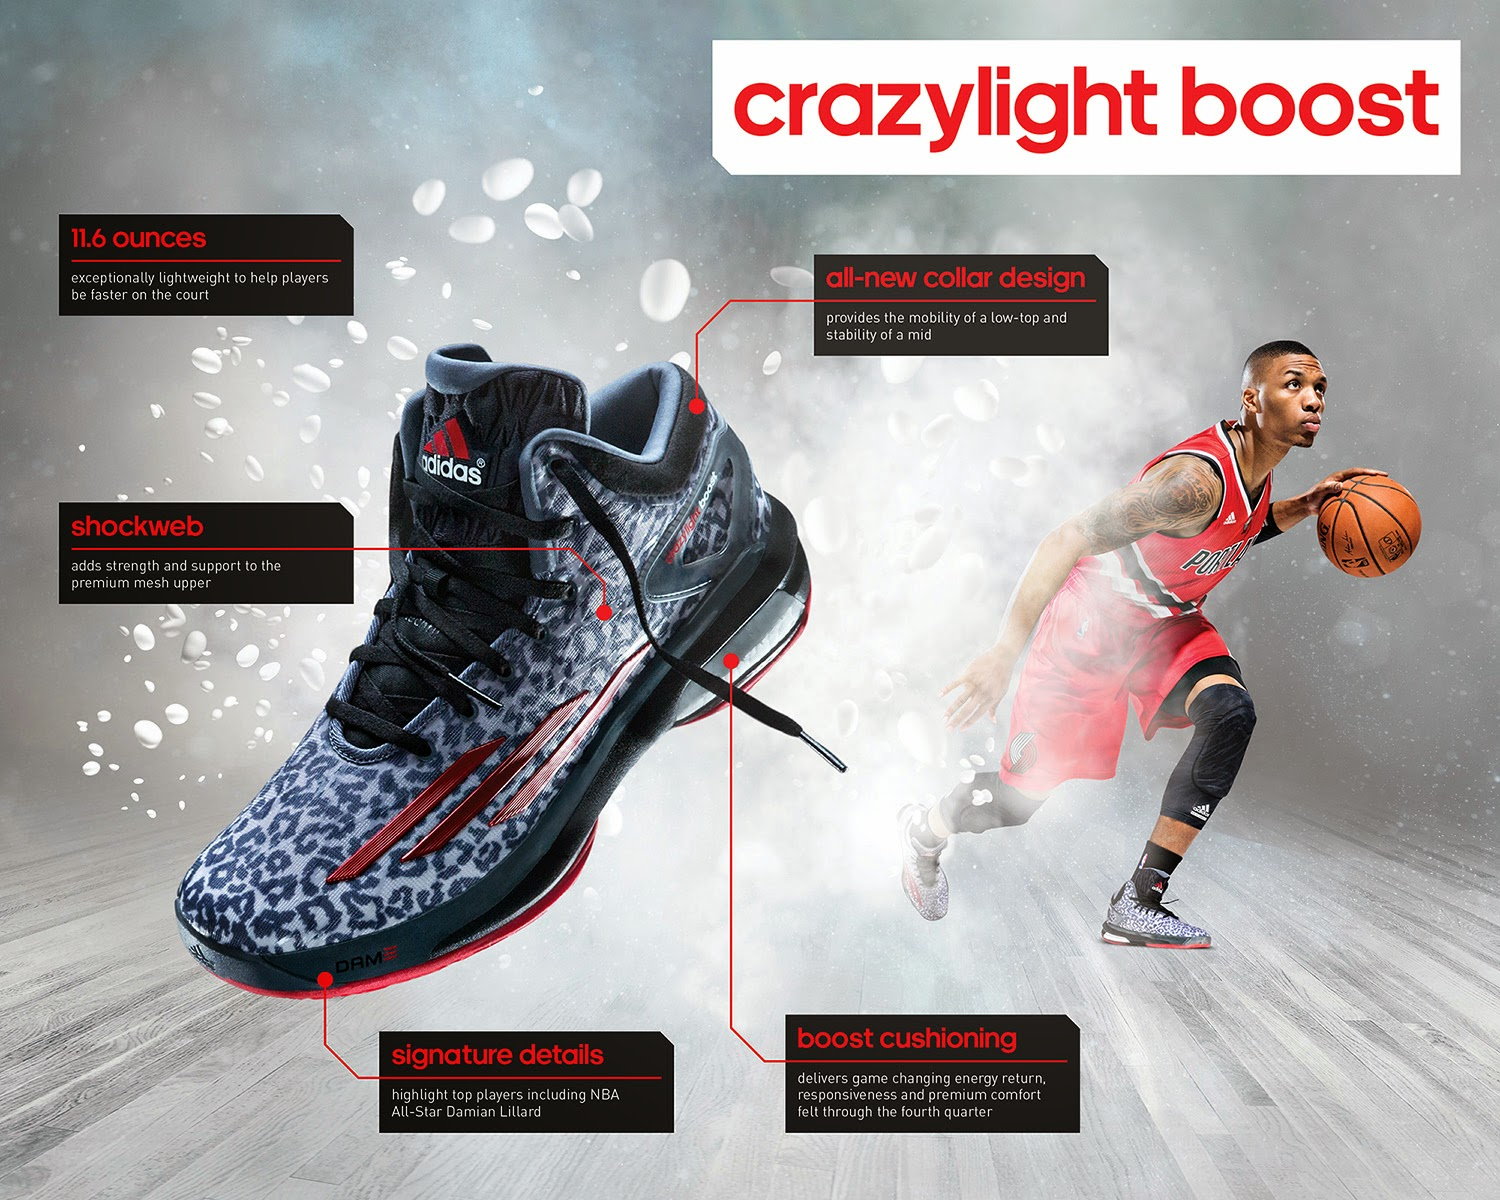 26da0d6854c1 Manila Life  ADIDAS BRINGS GAME-CHANGING ENERGY TO THE COURT WITH ...